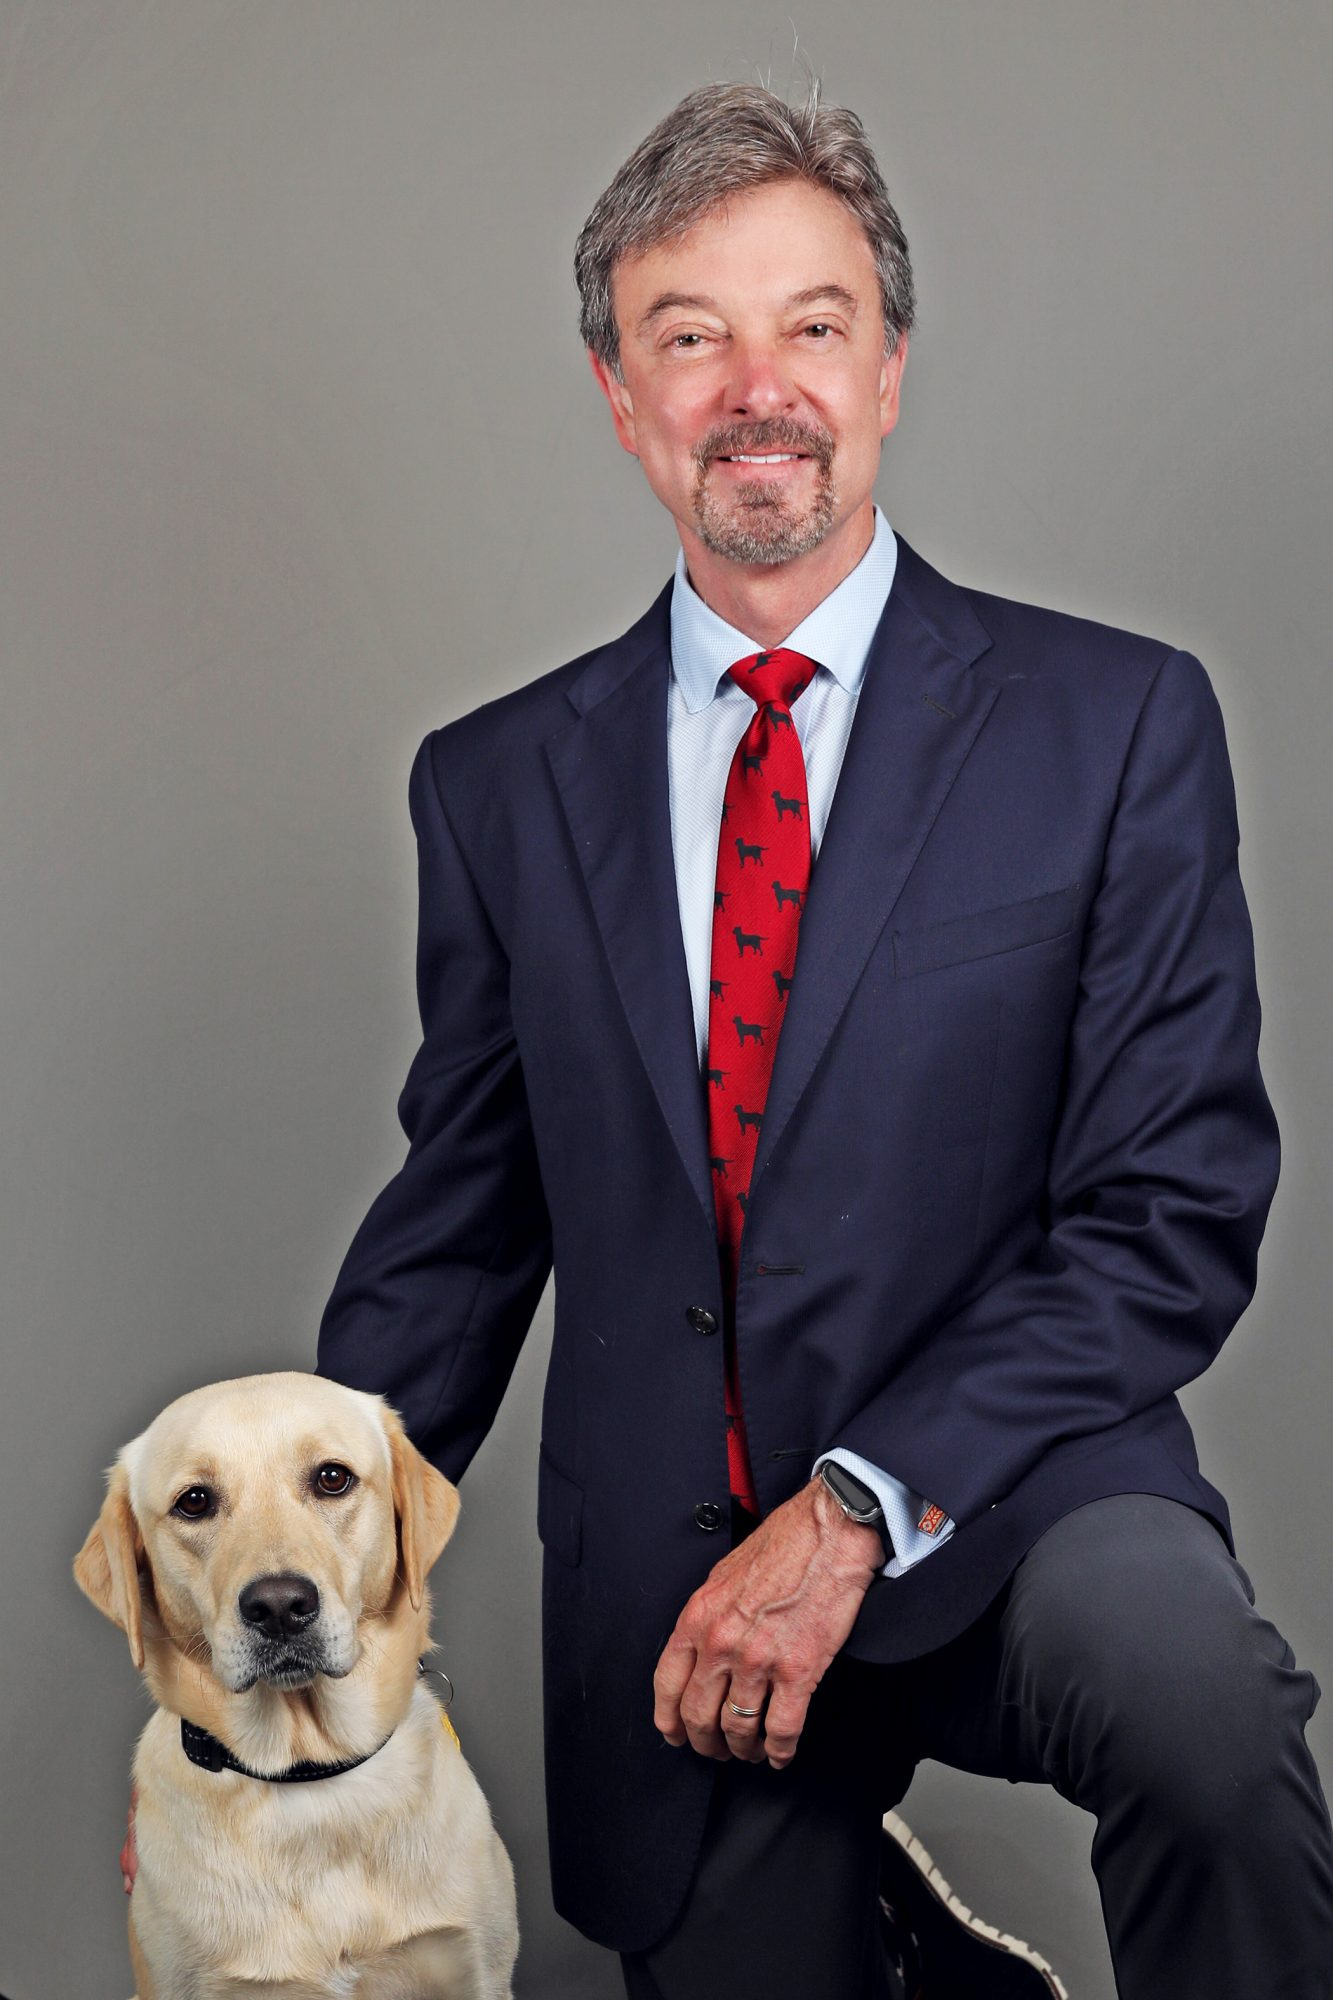 covid sniffing dog Buffy with his owner and Sarasota-Manatee, Doctors Hospital CEO Bob Meade